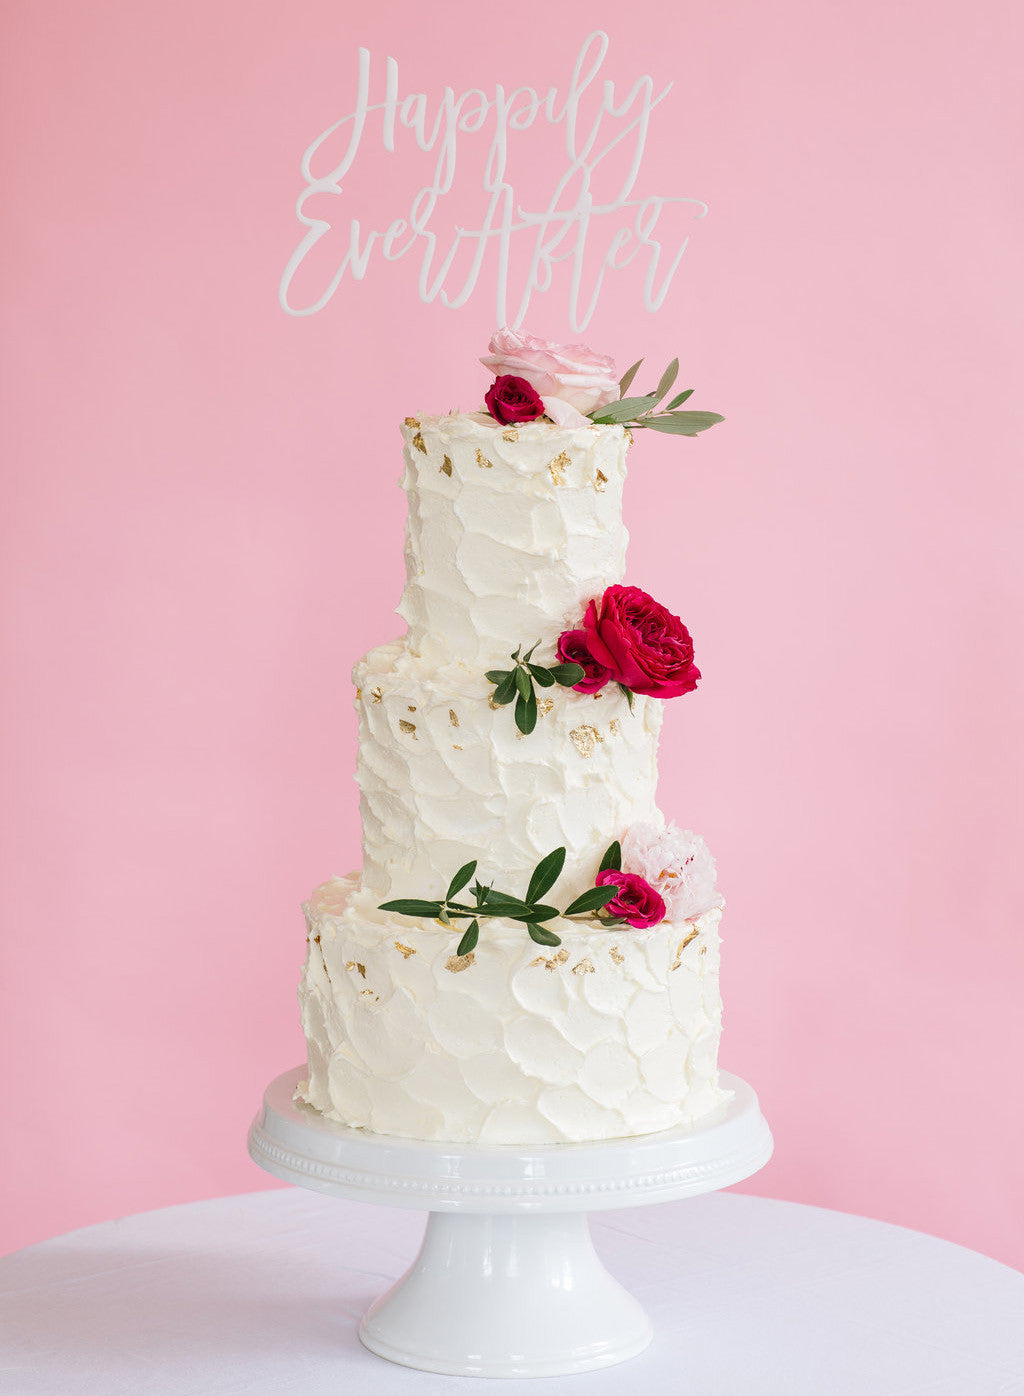 I found this at #moonandlola! - Happily Ever After Cake Topper on Tall Cake